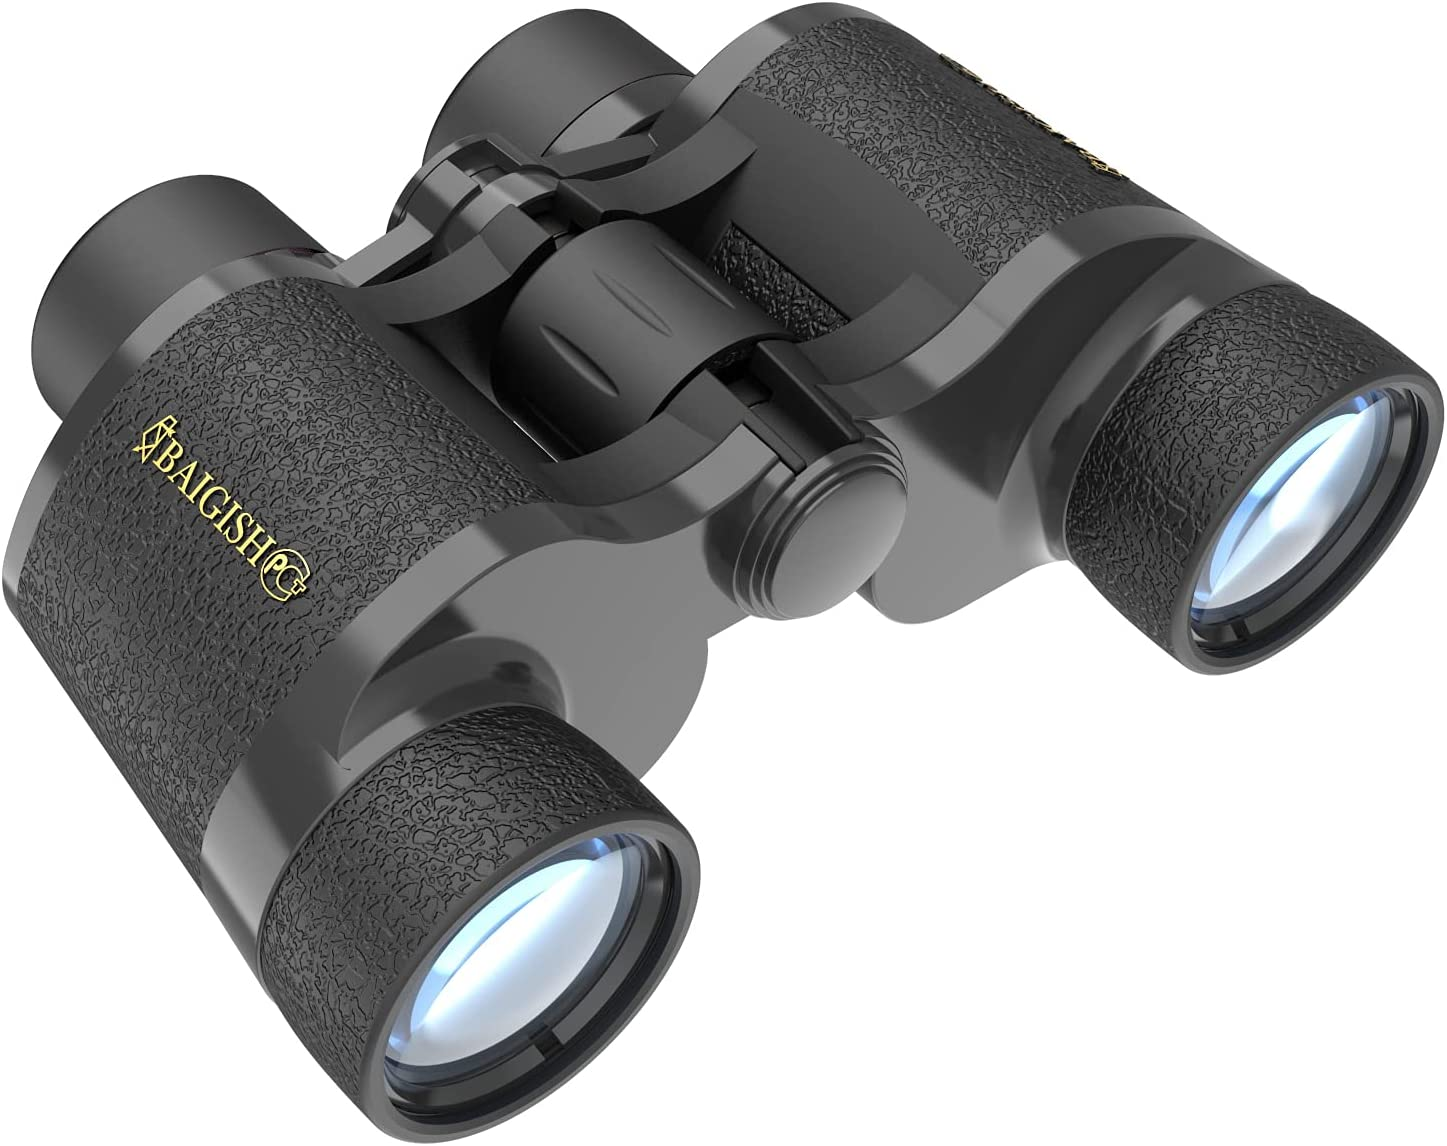 10x40 Binoculars for Adults,BAK4 Prism FMC Lens HD Professional/Waterproof Binoculars with Low Light for Bird Watching Travel Hunting Concerts Sports